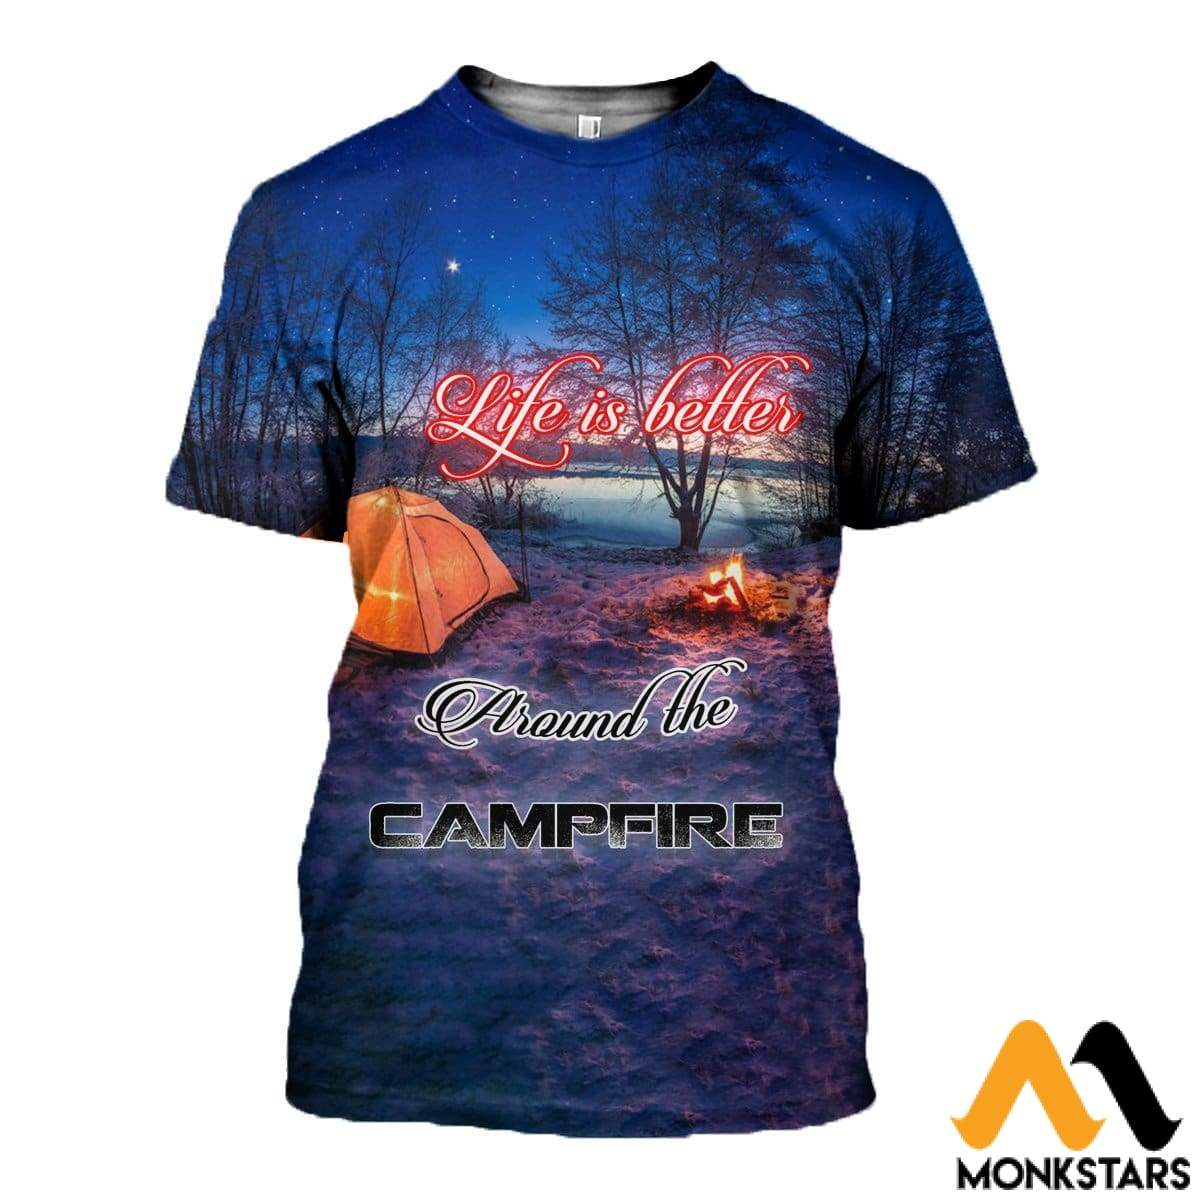 3D All Over Printed Camping T-Shirt Hoodie Adak200401 / Xs Clothes